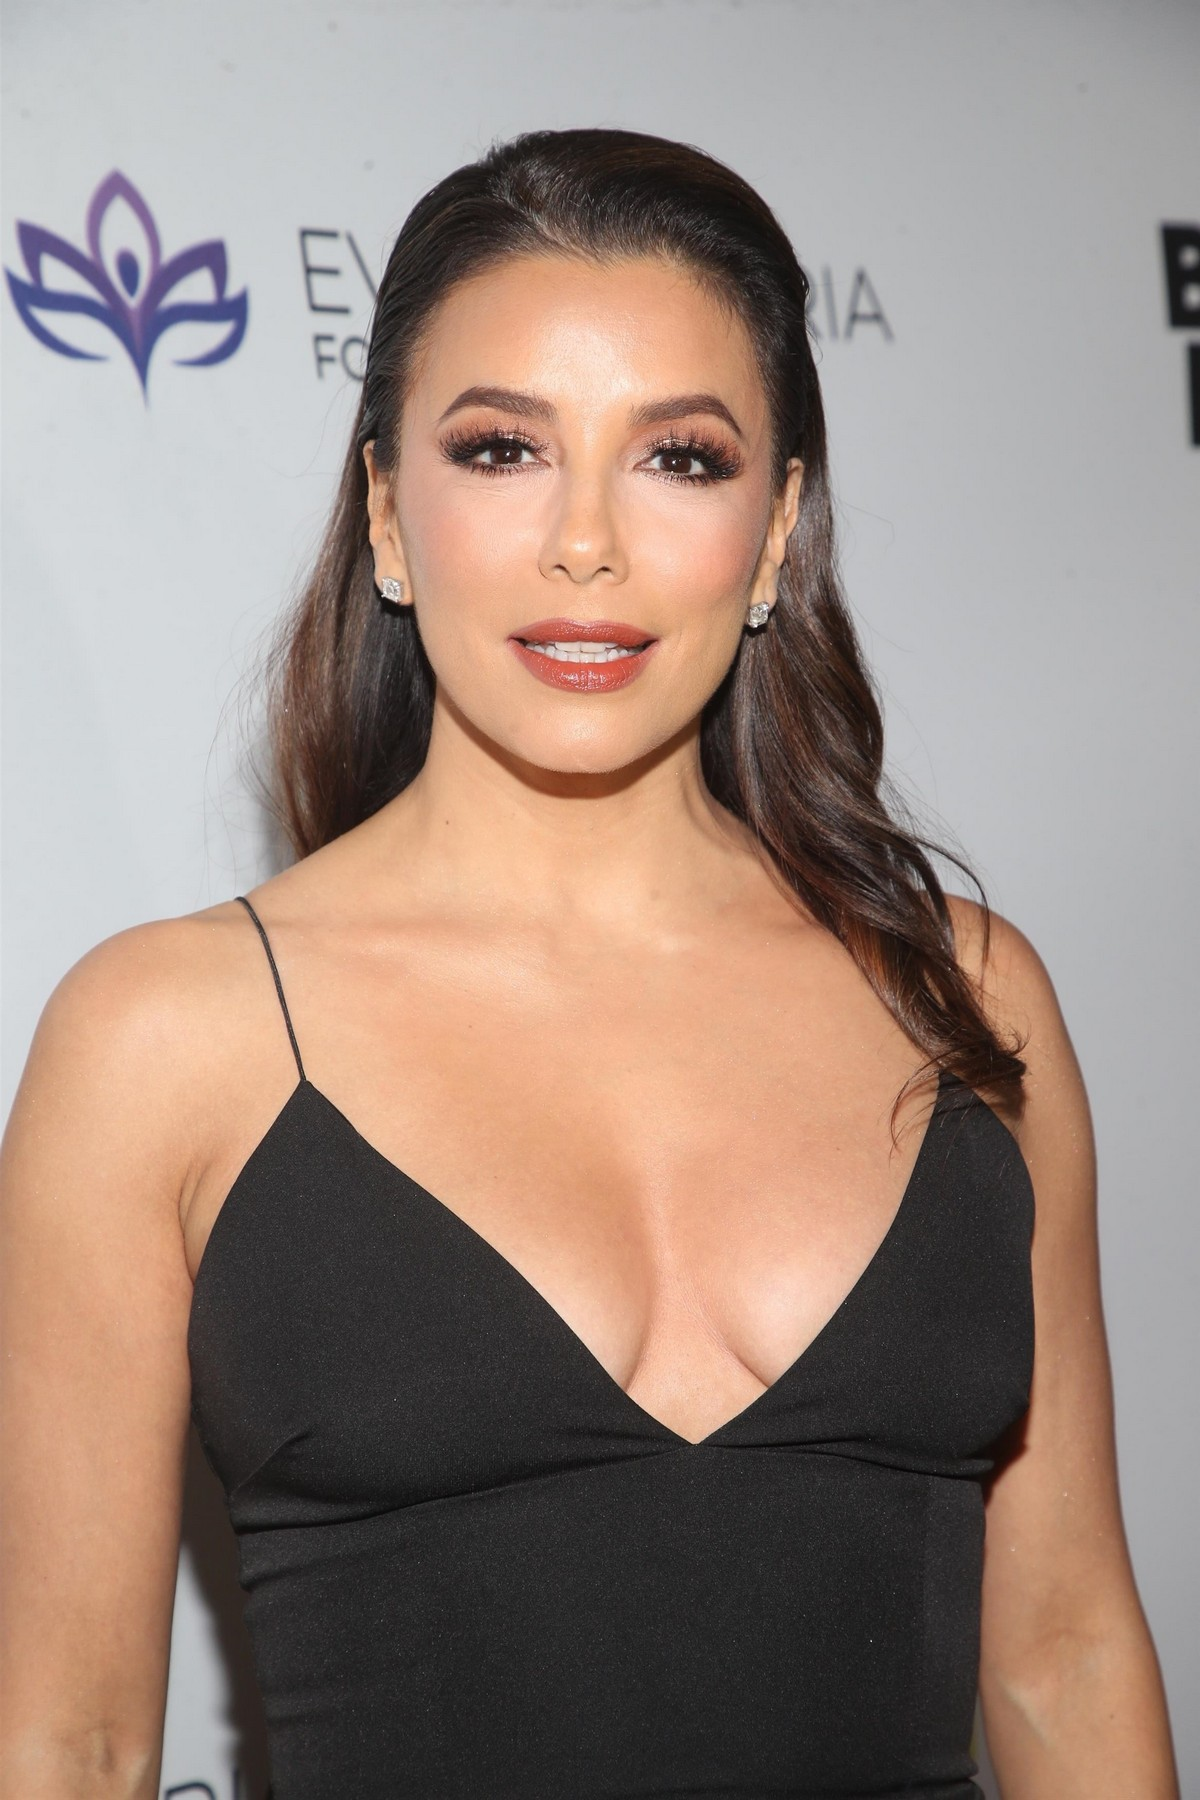 Eva Longoria attends The Eva Longoria Foundation Gala at the Four Seasons in Los Angeles 2019/11/15 6